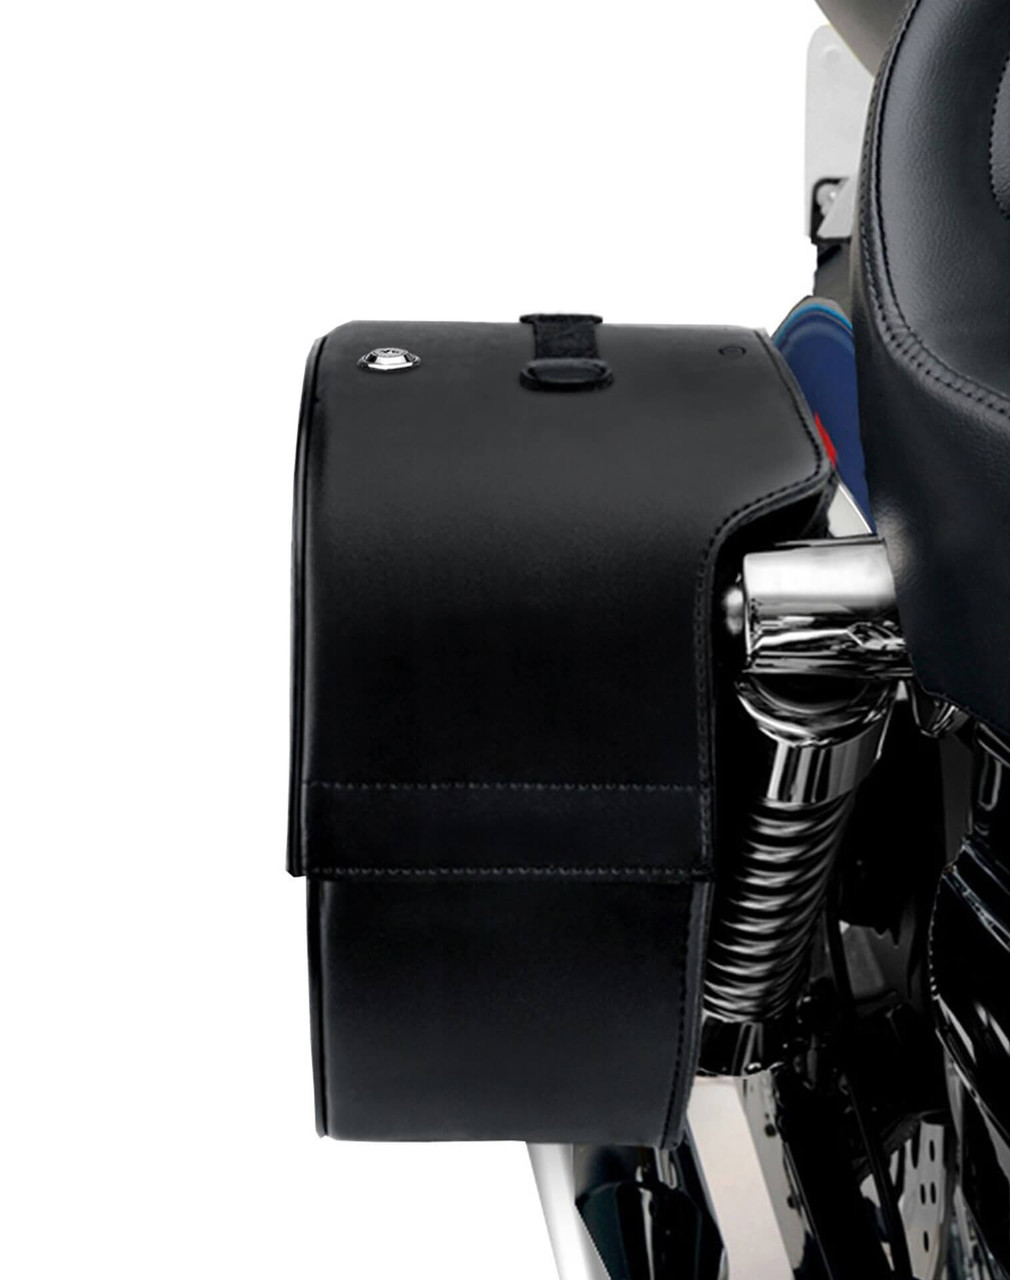 Honda 1500 Valkyrie Standard Spear Shock Cutout Studded Motorcycle saddlebags Shock Cutout View